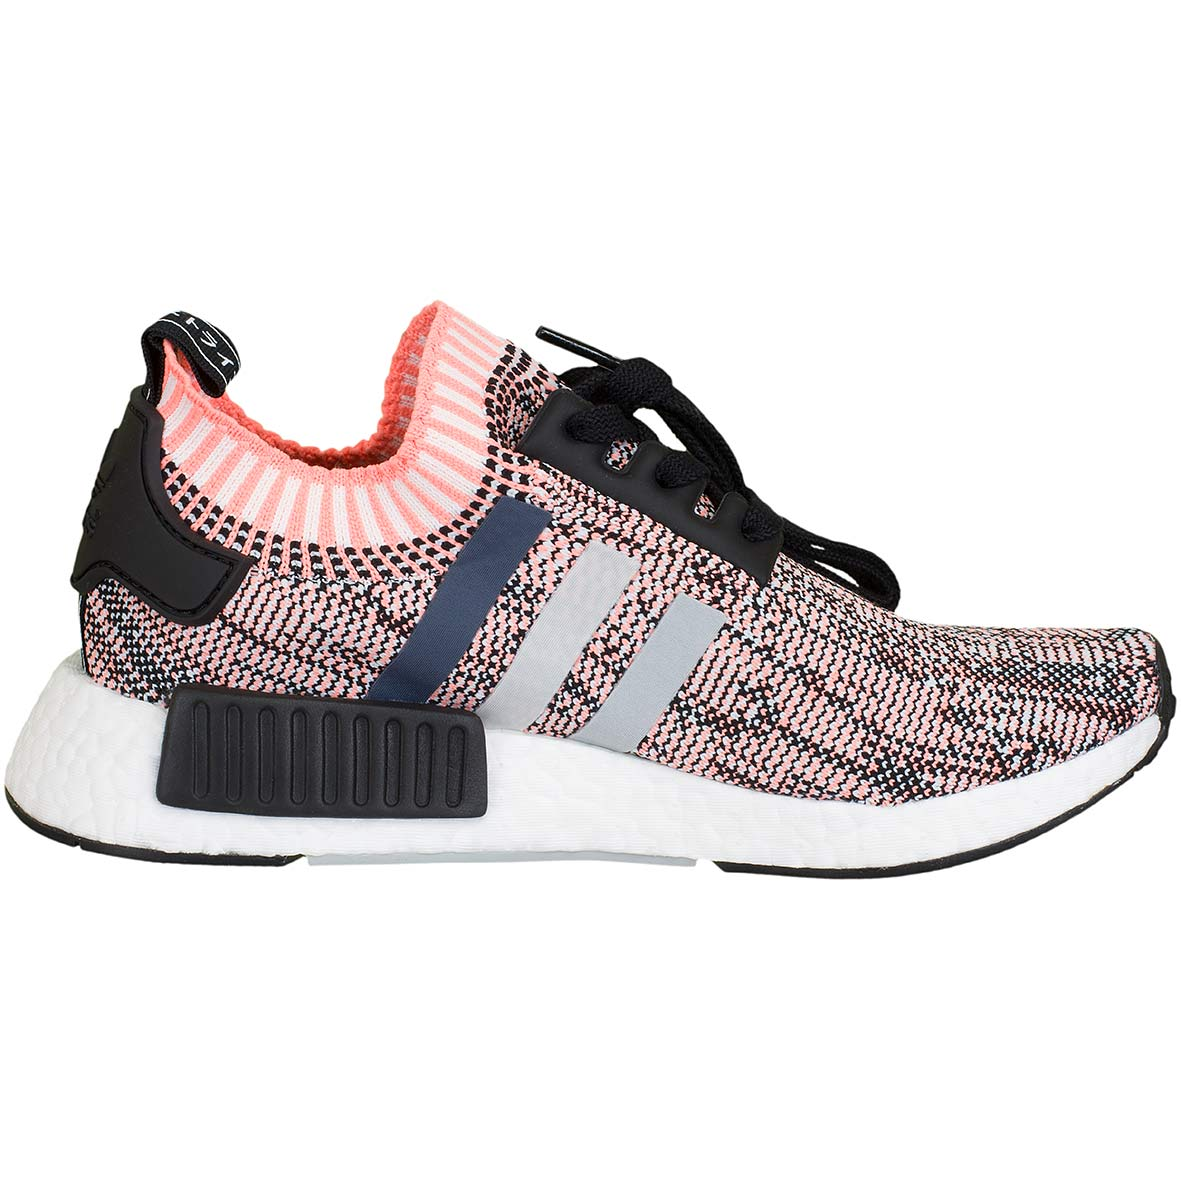 adidas originals damen sneaker nmd r1 pk schwarz pink. Black Bedroom Furniture Sets. Home Design Ideas